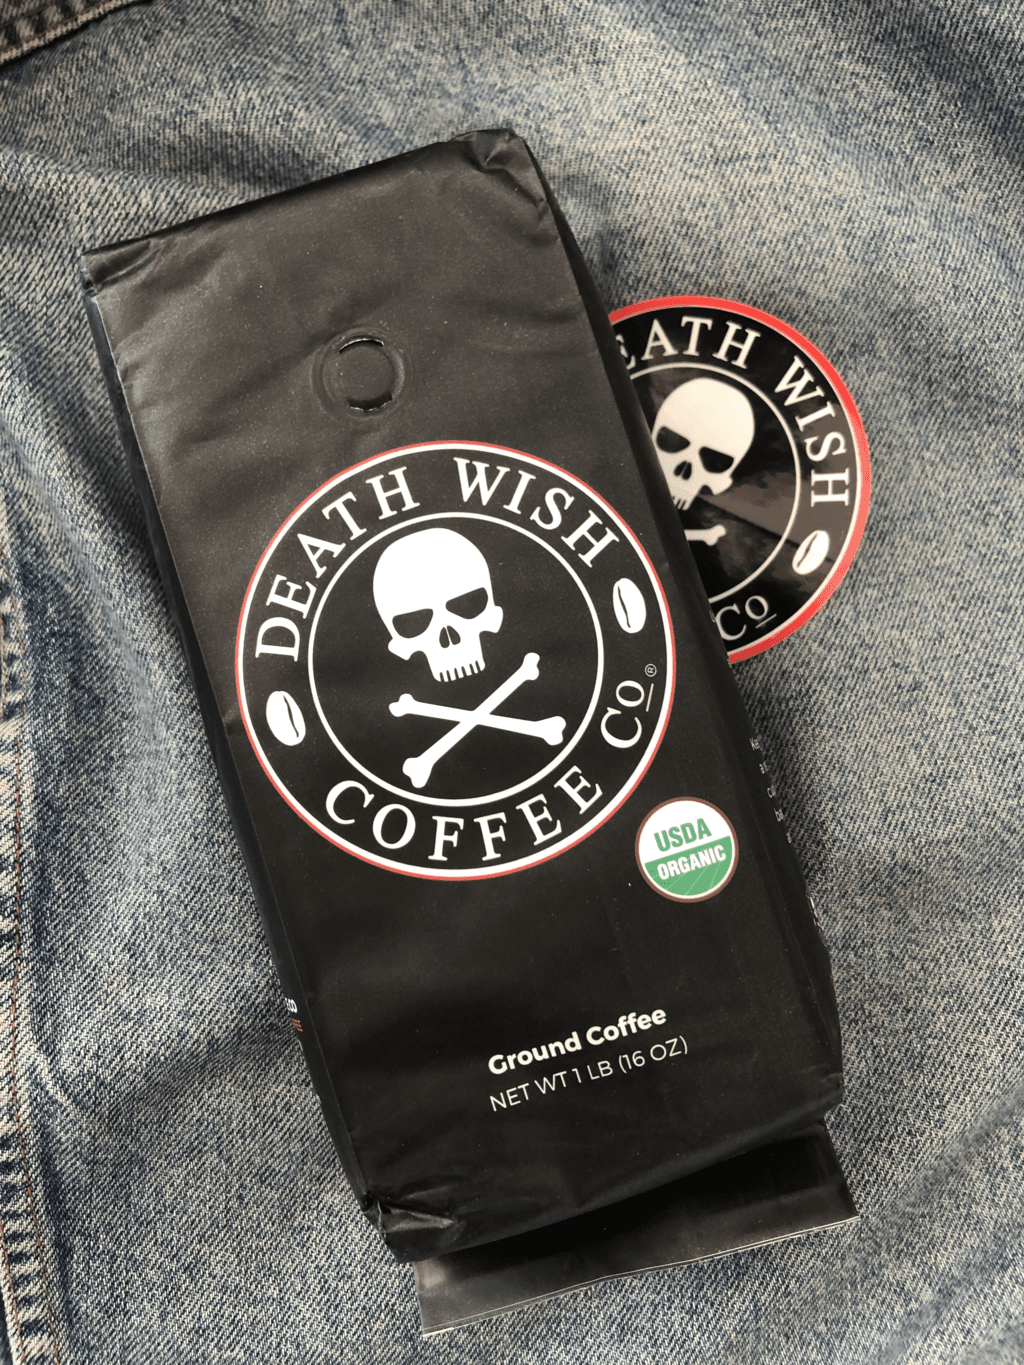 death wish coffee package